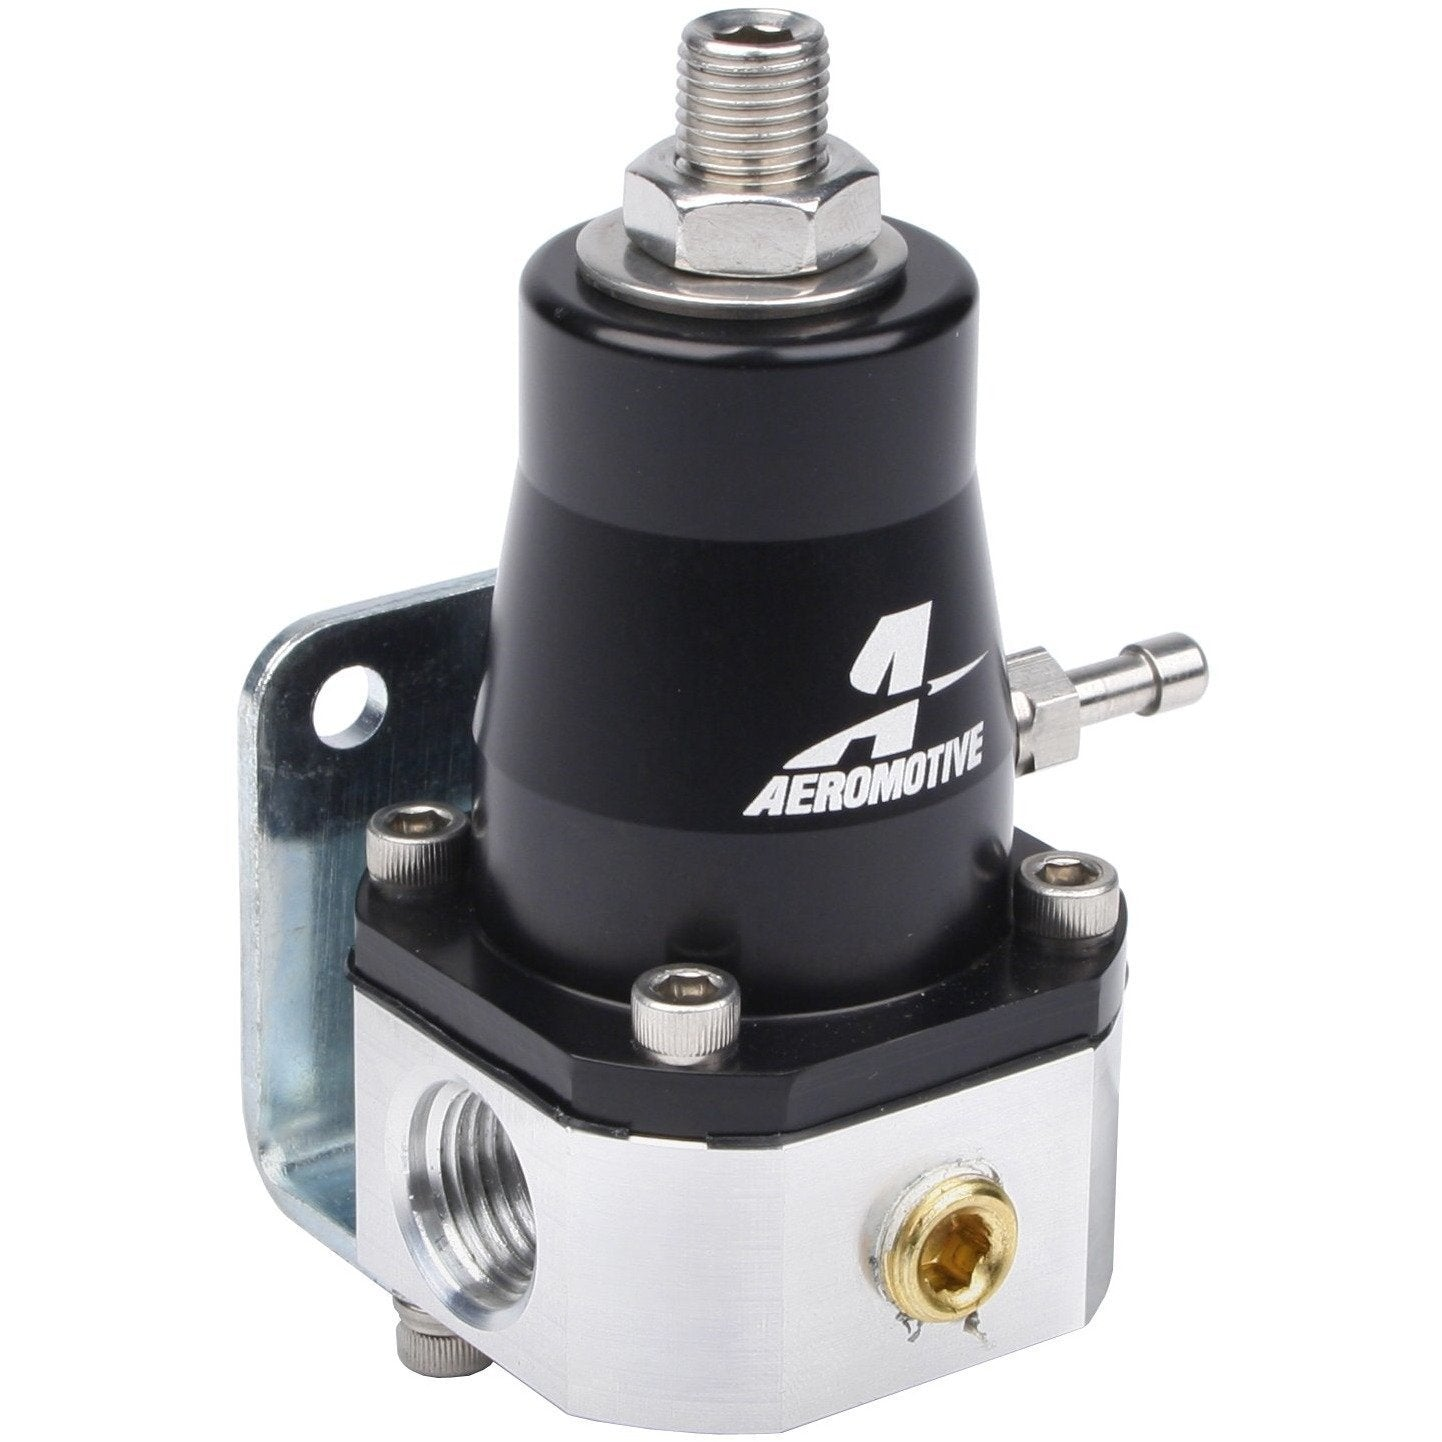 Aeromotive EFI Bypass Regulator 13129-Aeromotive-Motion Raceworks